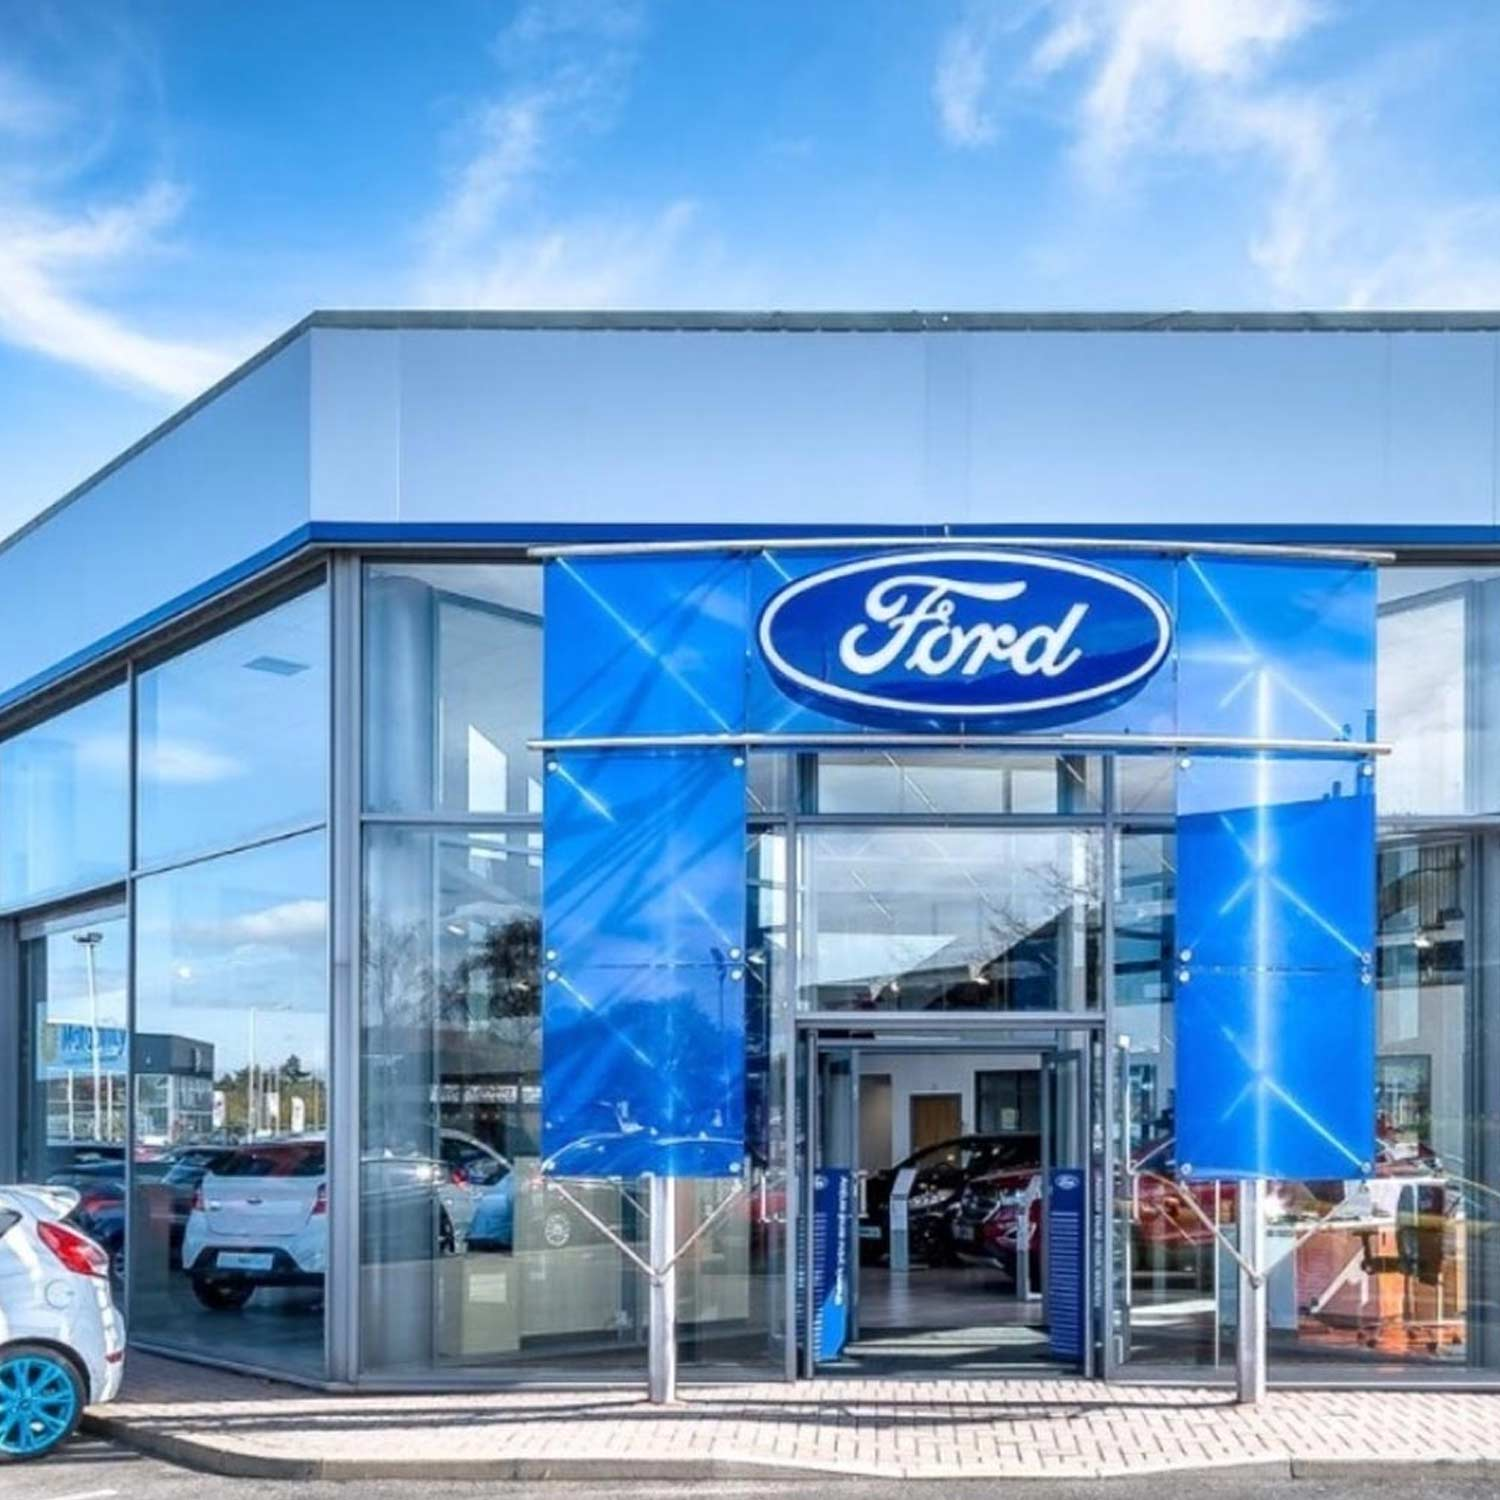 Ford-Garage Automotive graphics industry